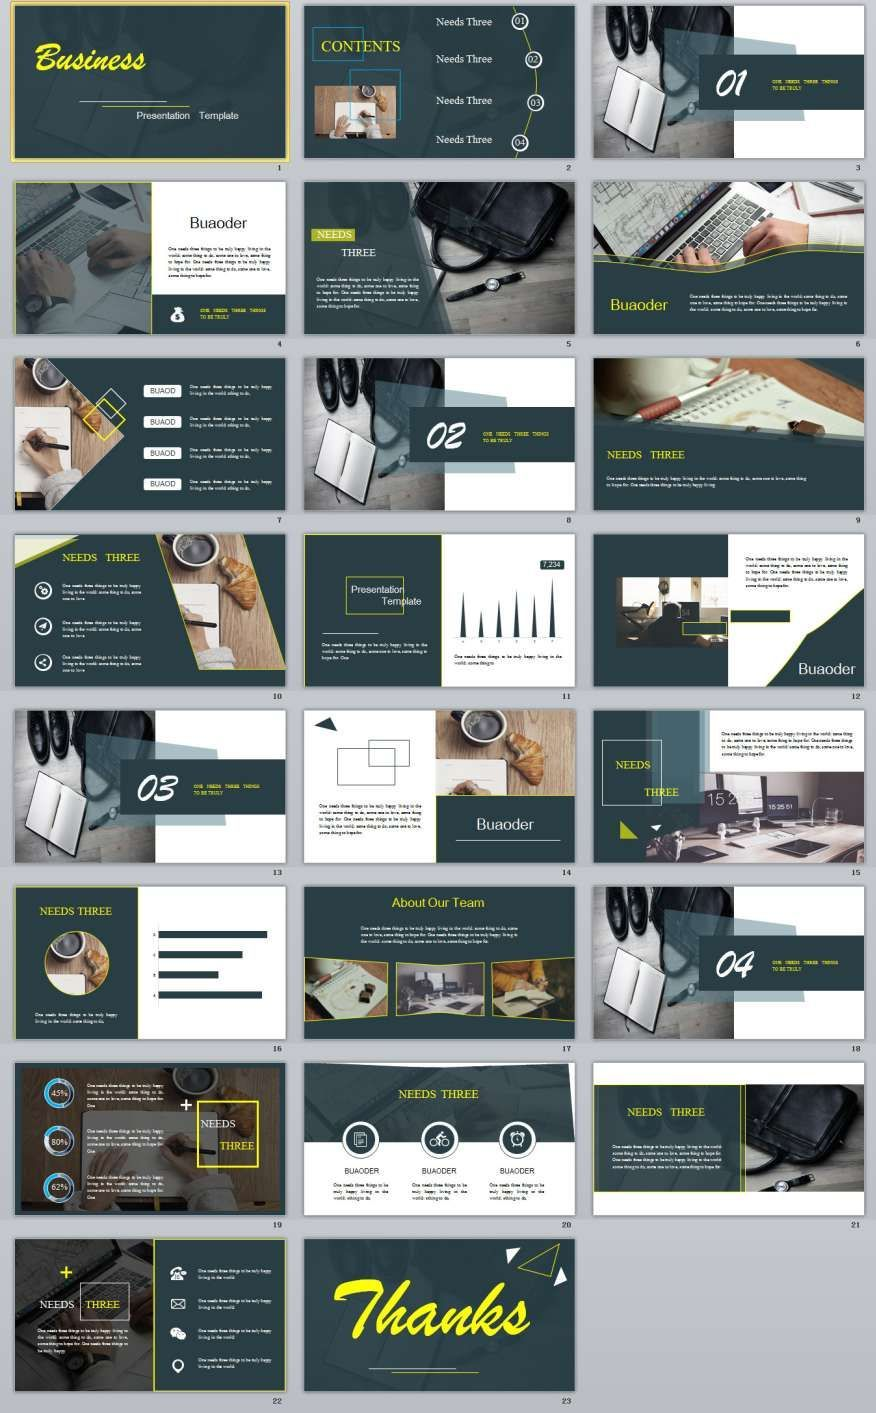 23 Simple Business Powerpoint Templates Business Powerpoint Simple Simpleanimationidea Ppt Design Powerpoint Prasentation Powerpoint Vorlagen